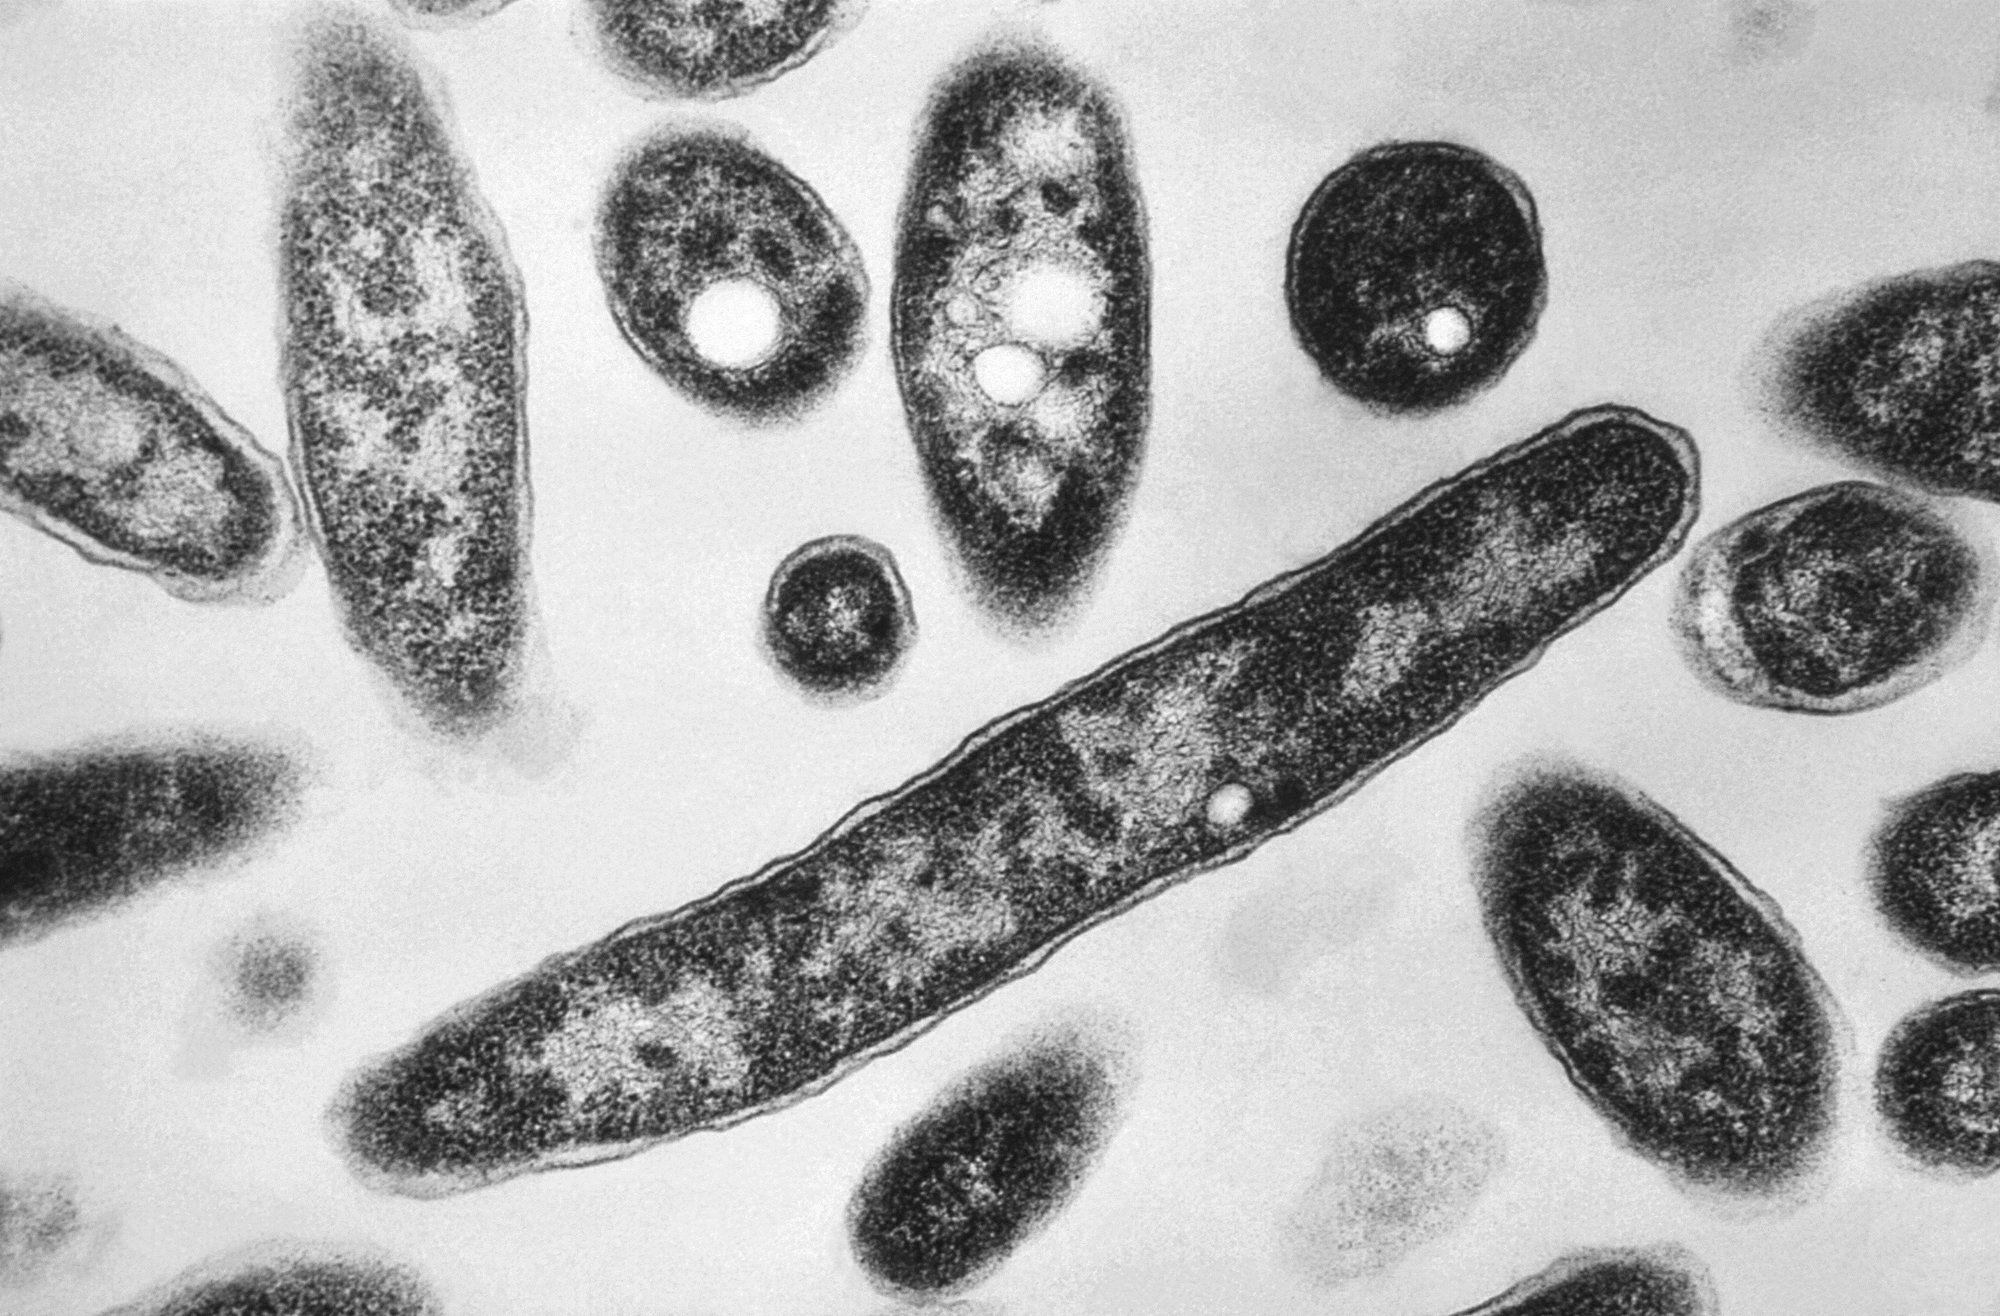 Experts call for steps to stem increases in Legionnaires'